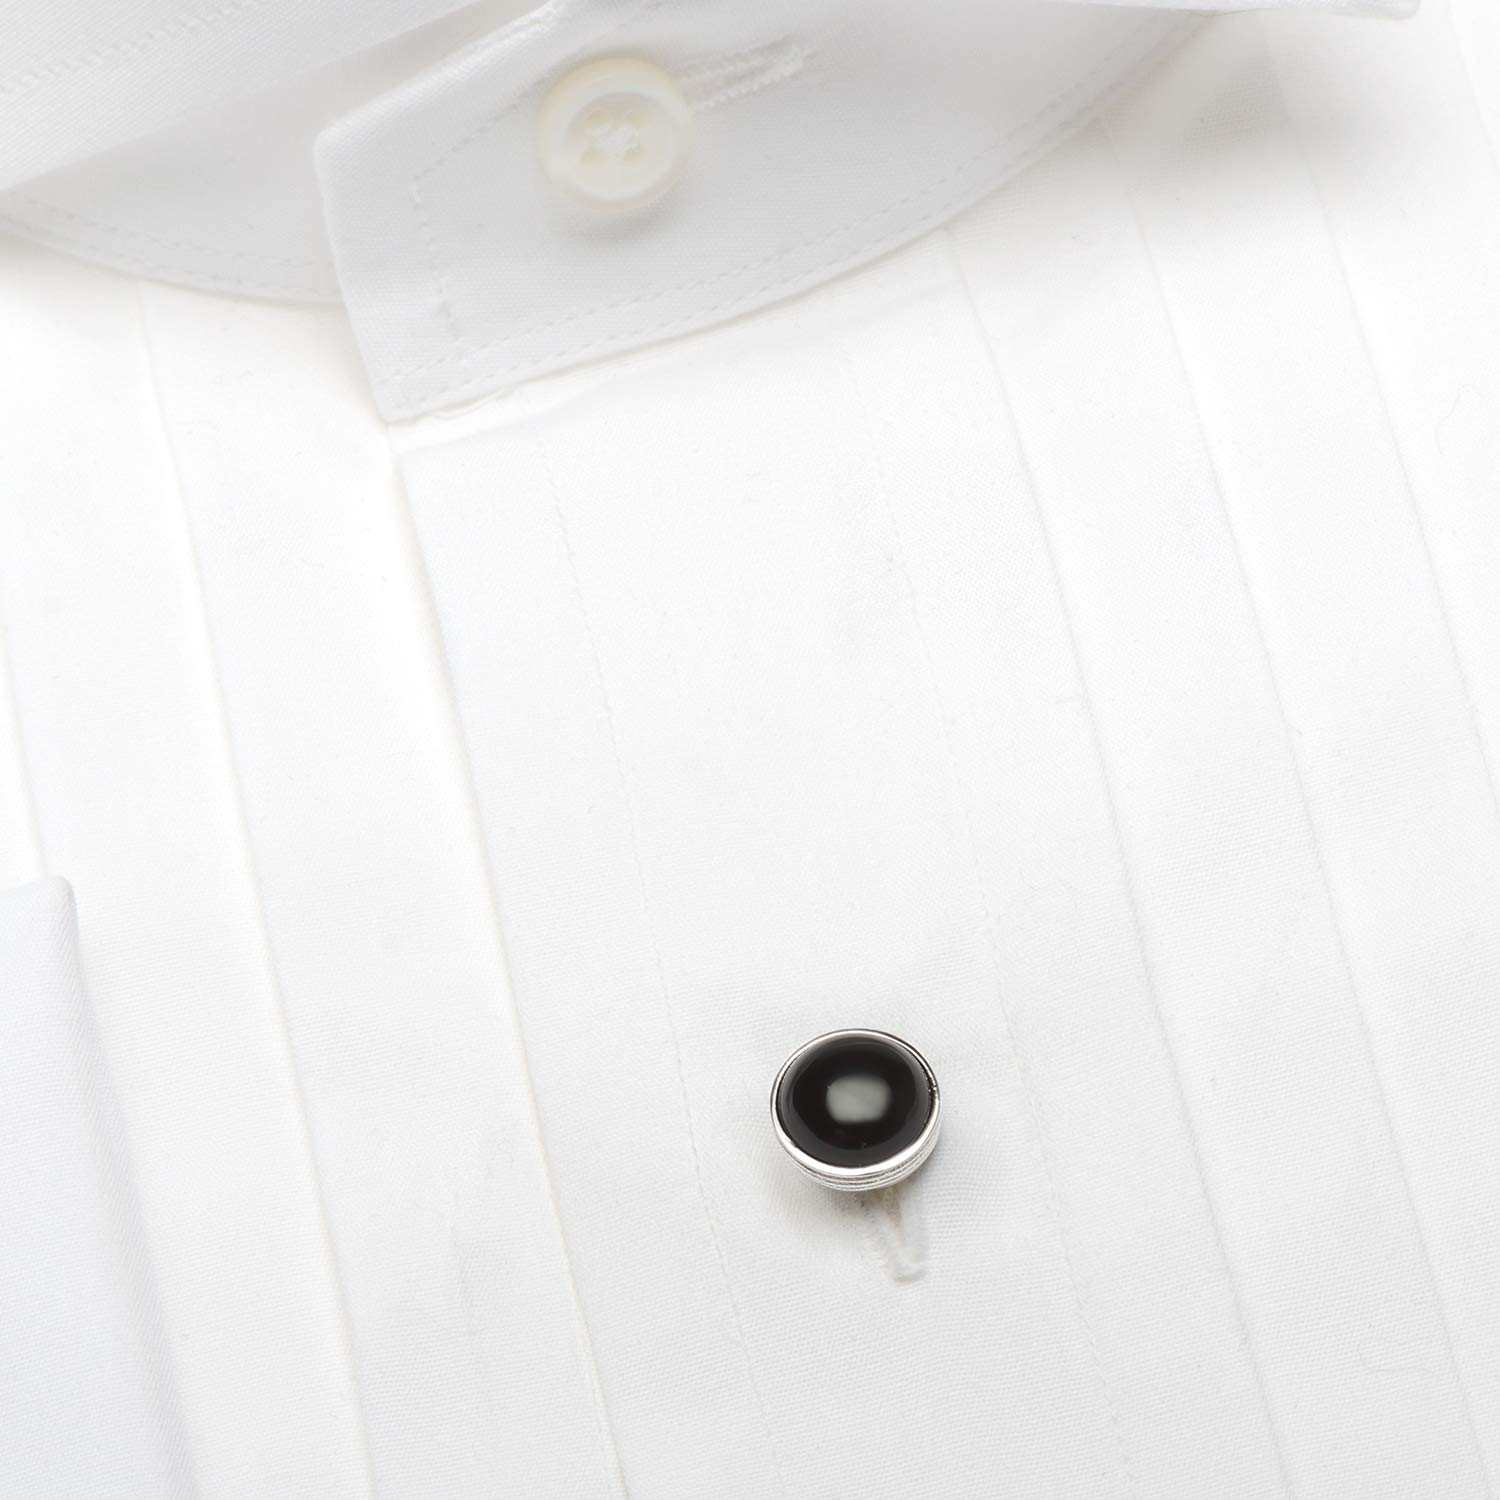 Ox and Bull Trading Co. Sterling Silver Ribbed Onyx Studs by Ox and Bull Trading Company (Image #3)